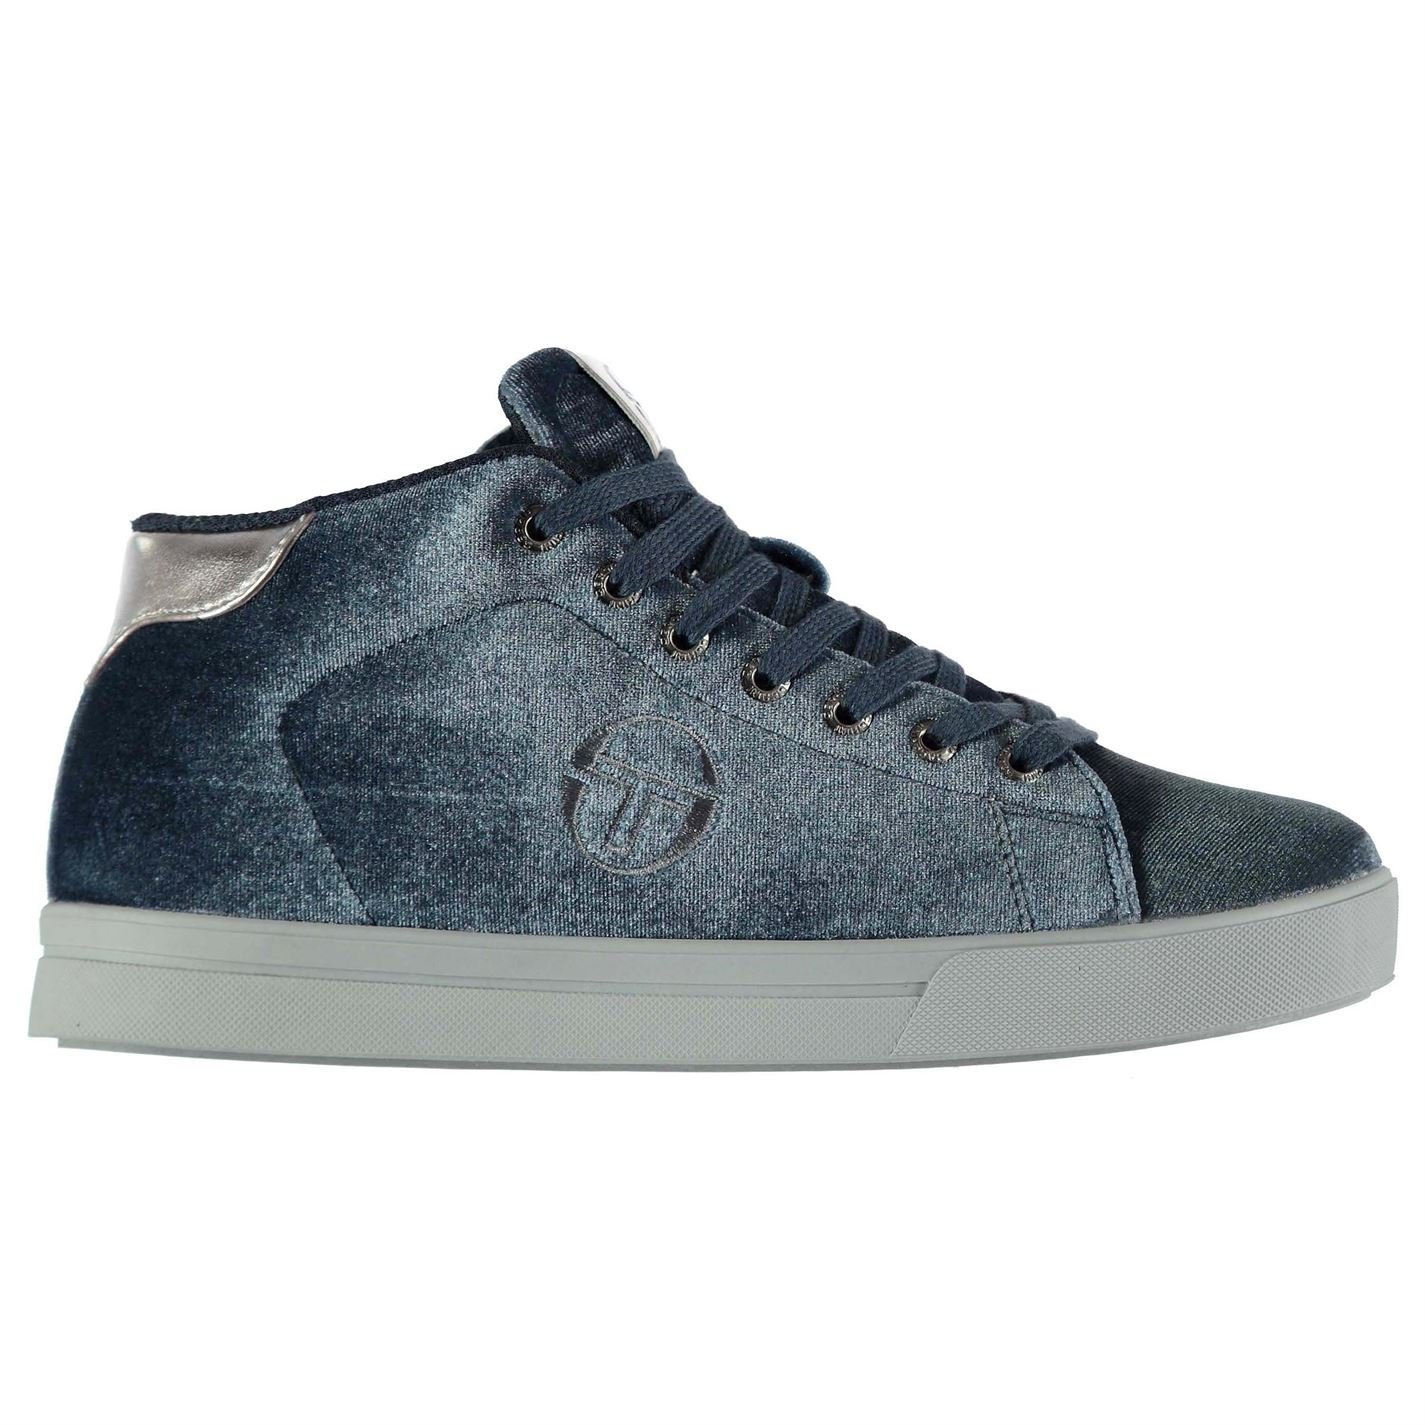 39 Sergio Tacchini Womens Ladies Velvet High Top Trainers Sneakers Shoes Iron UK 6